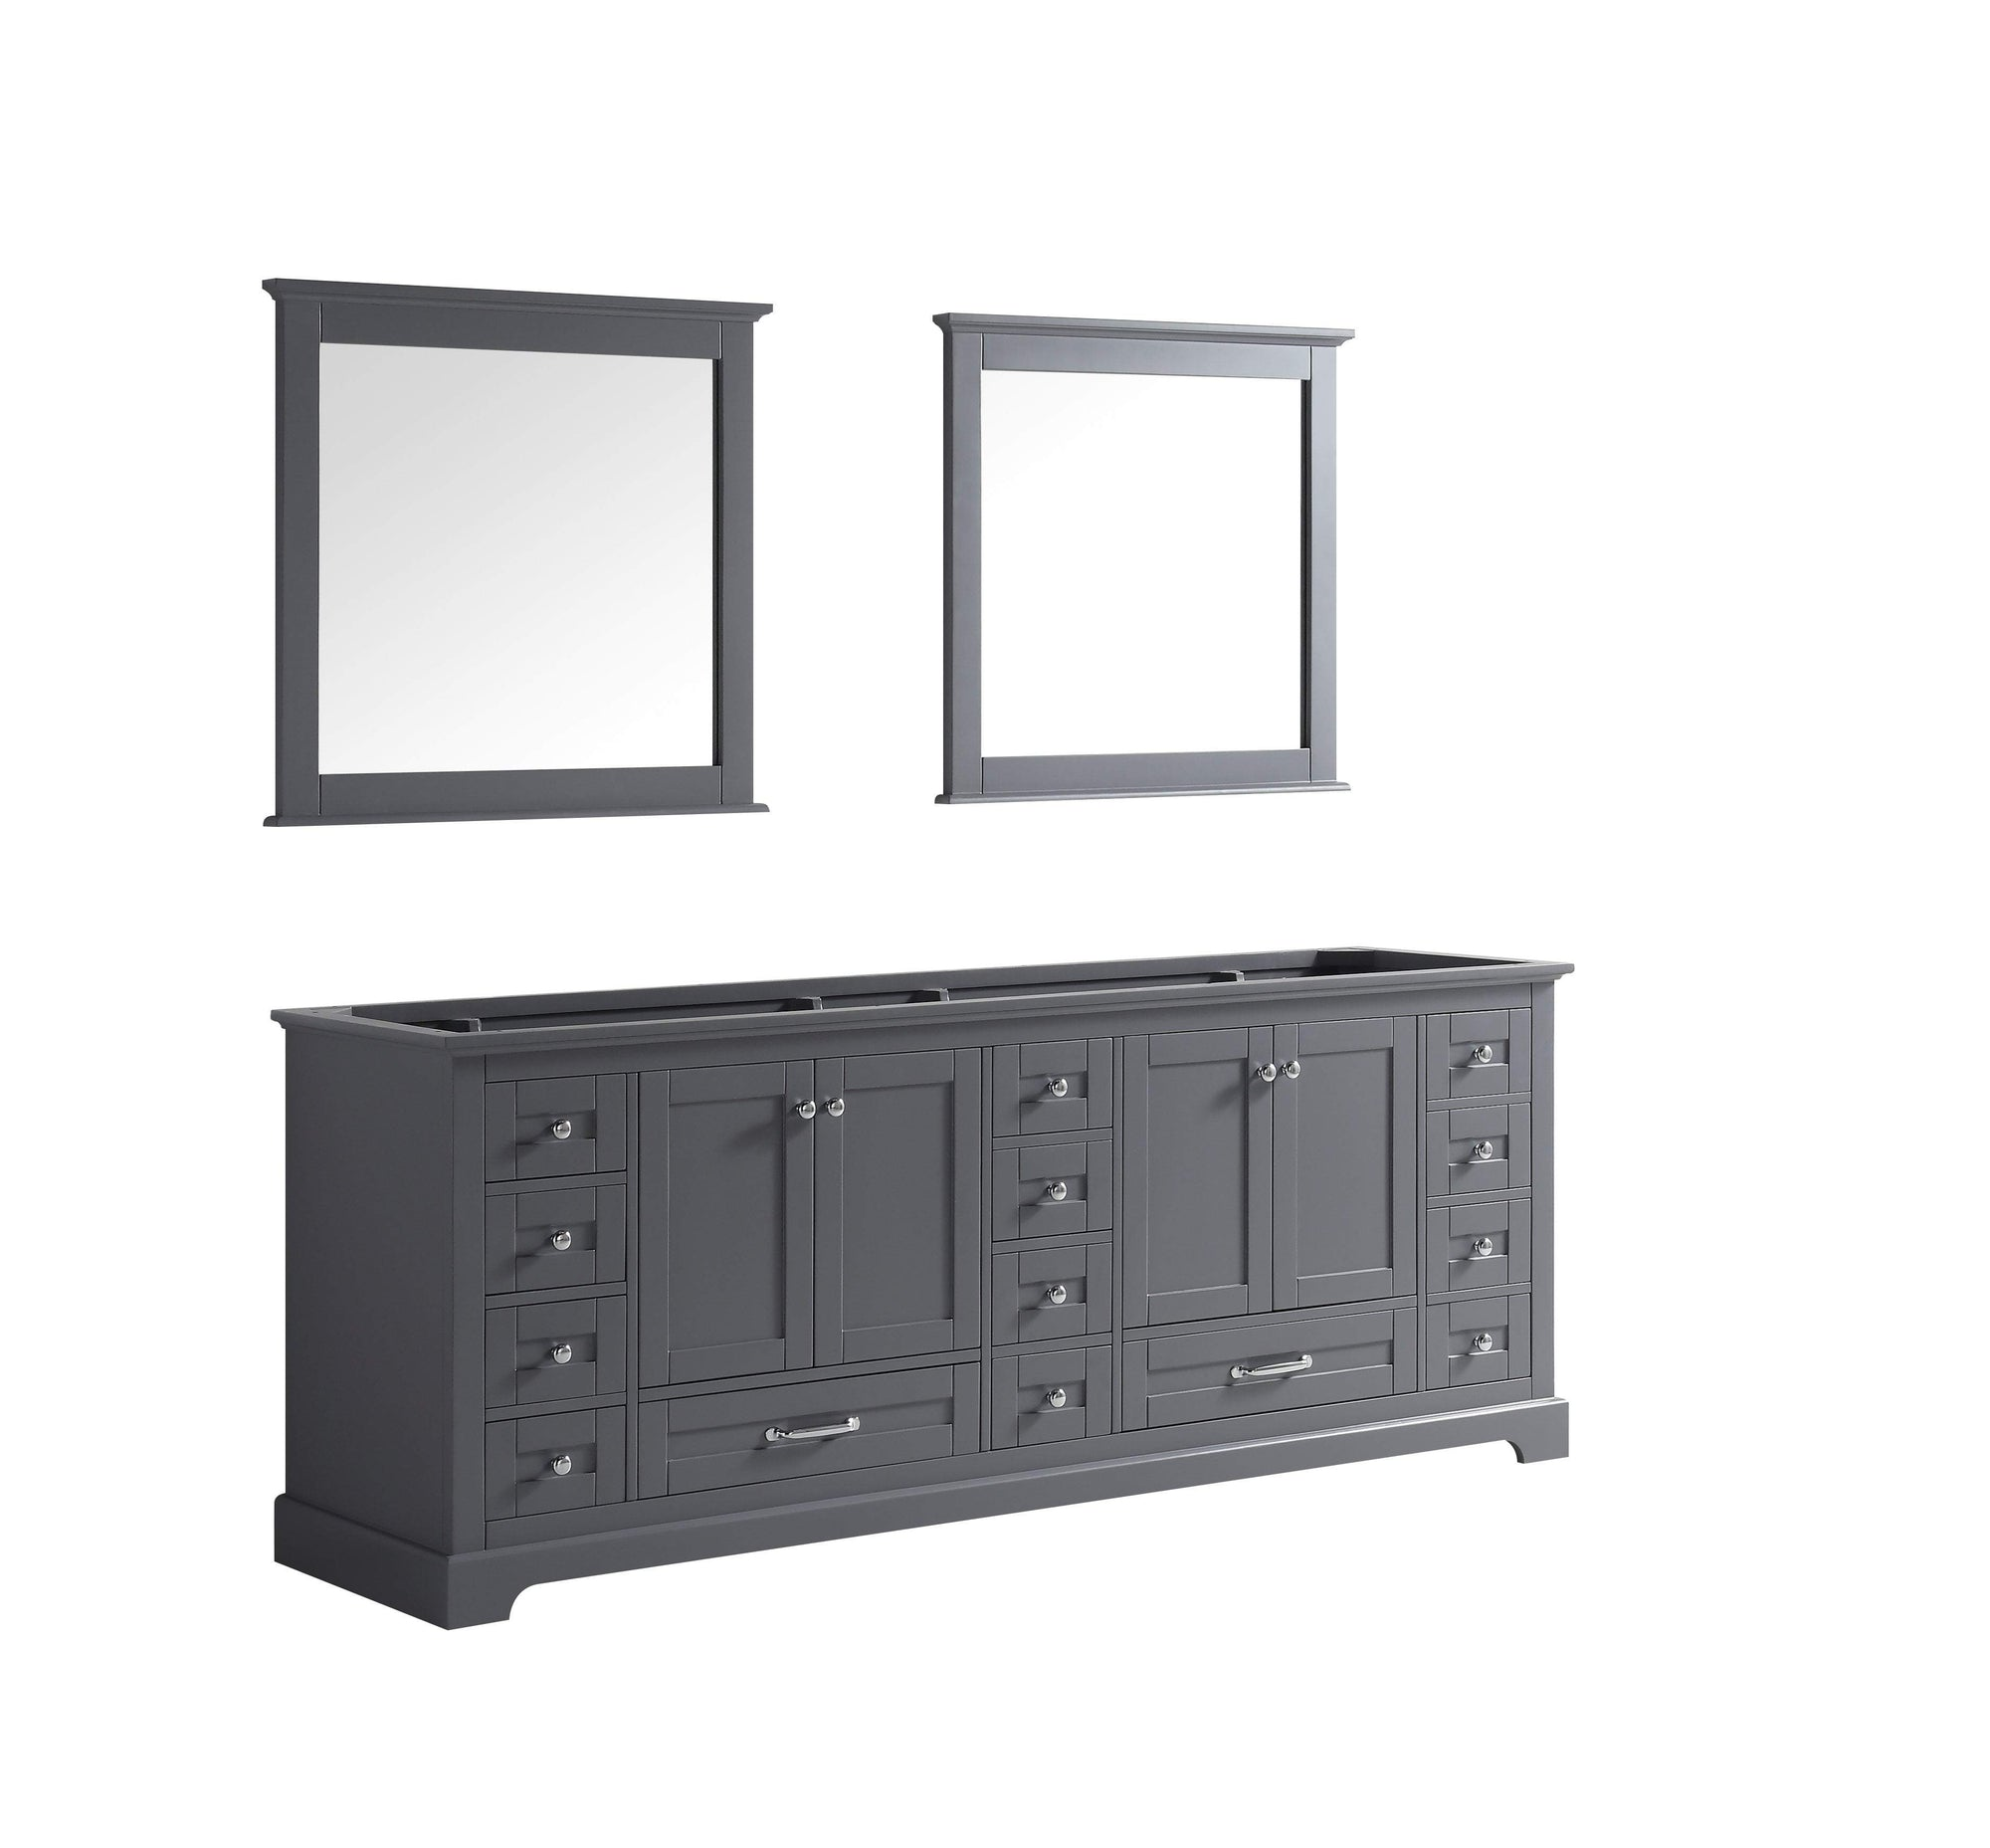 Lexora Double Sink Vanity